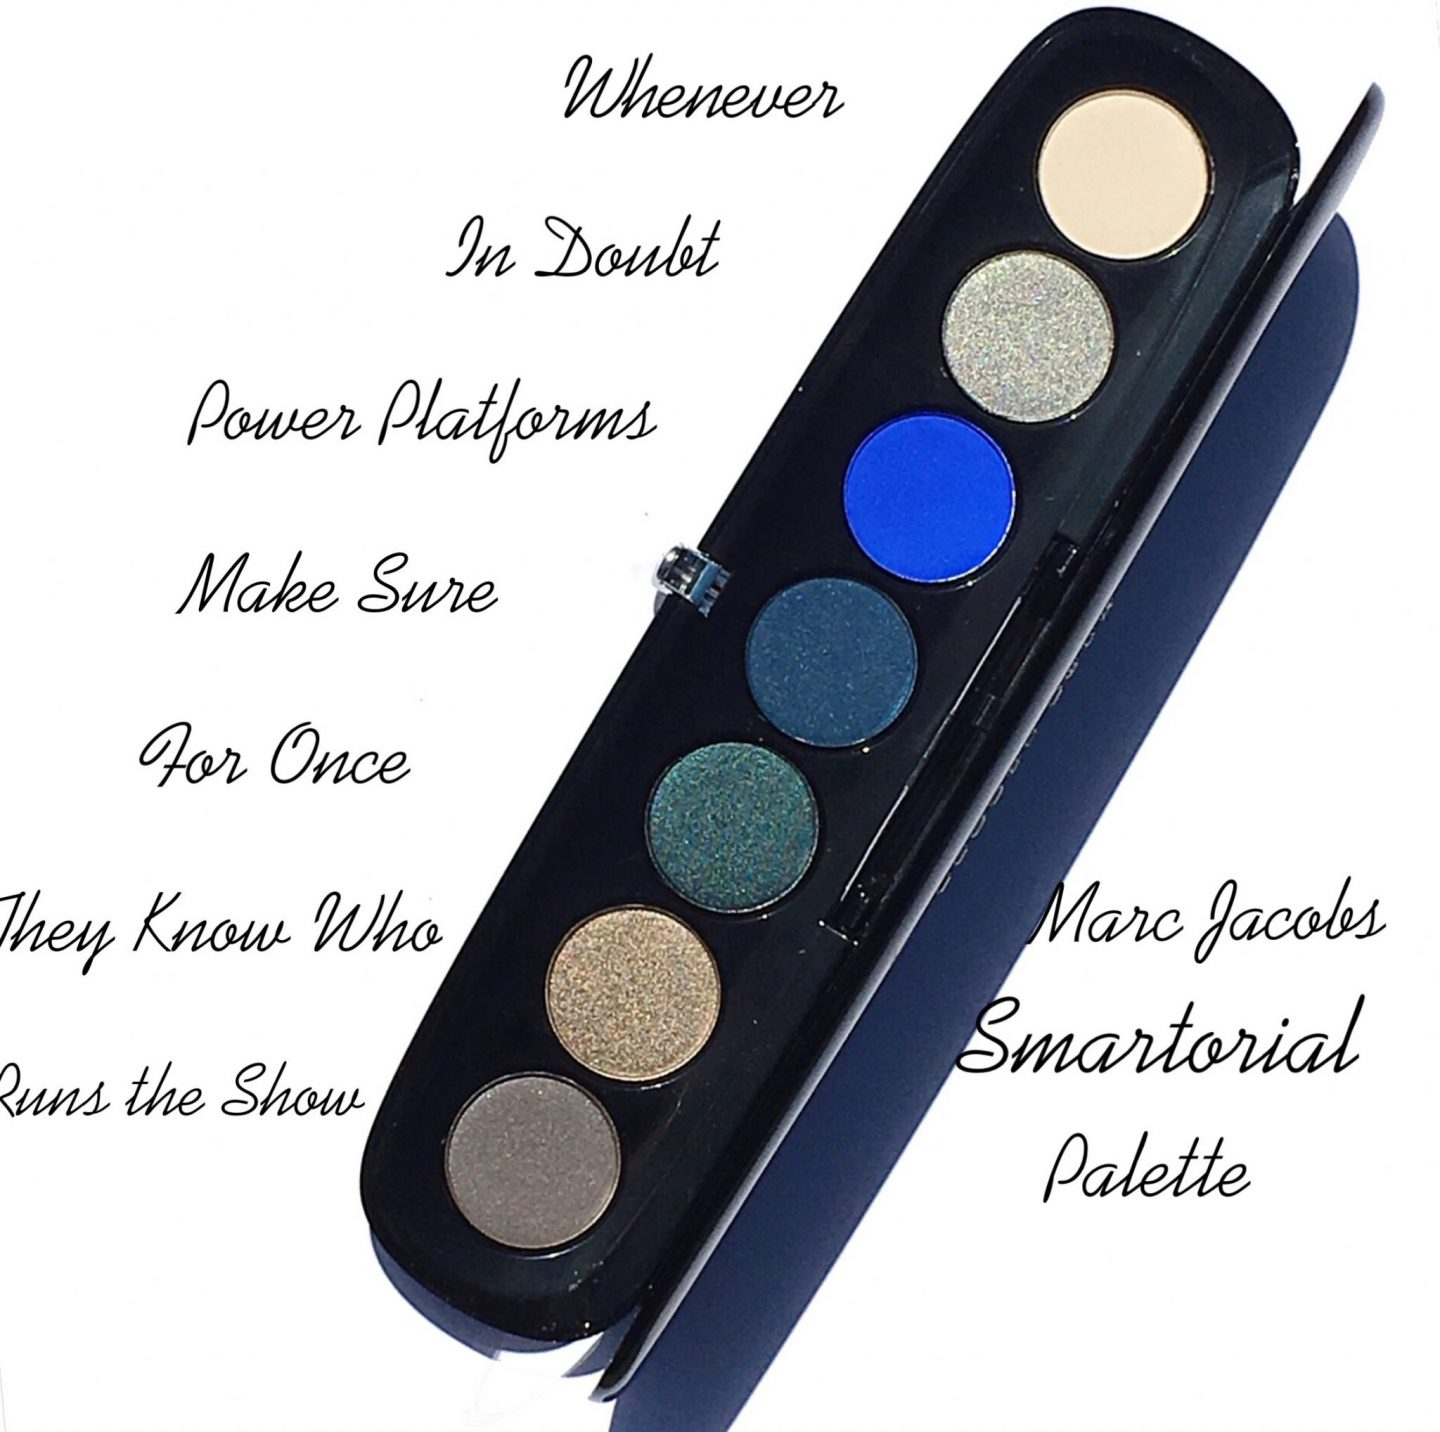 Marc Jacobs Smartorial Palette Review |www.calibeaute.com